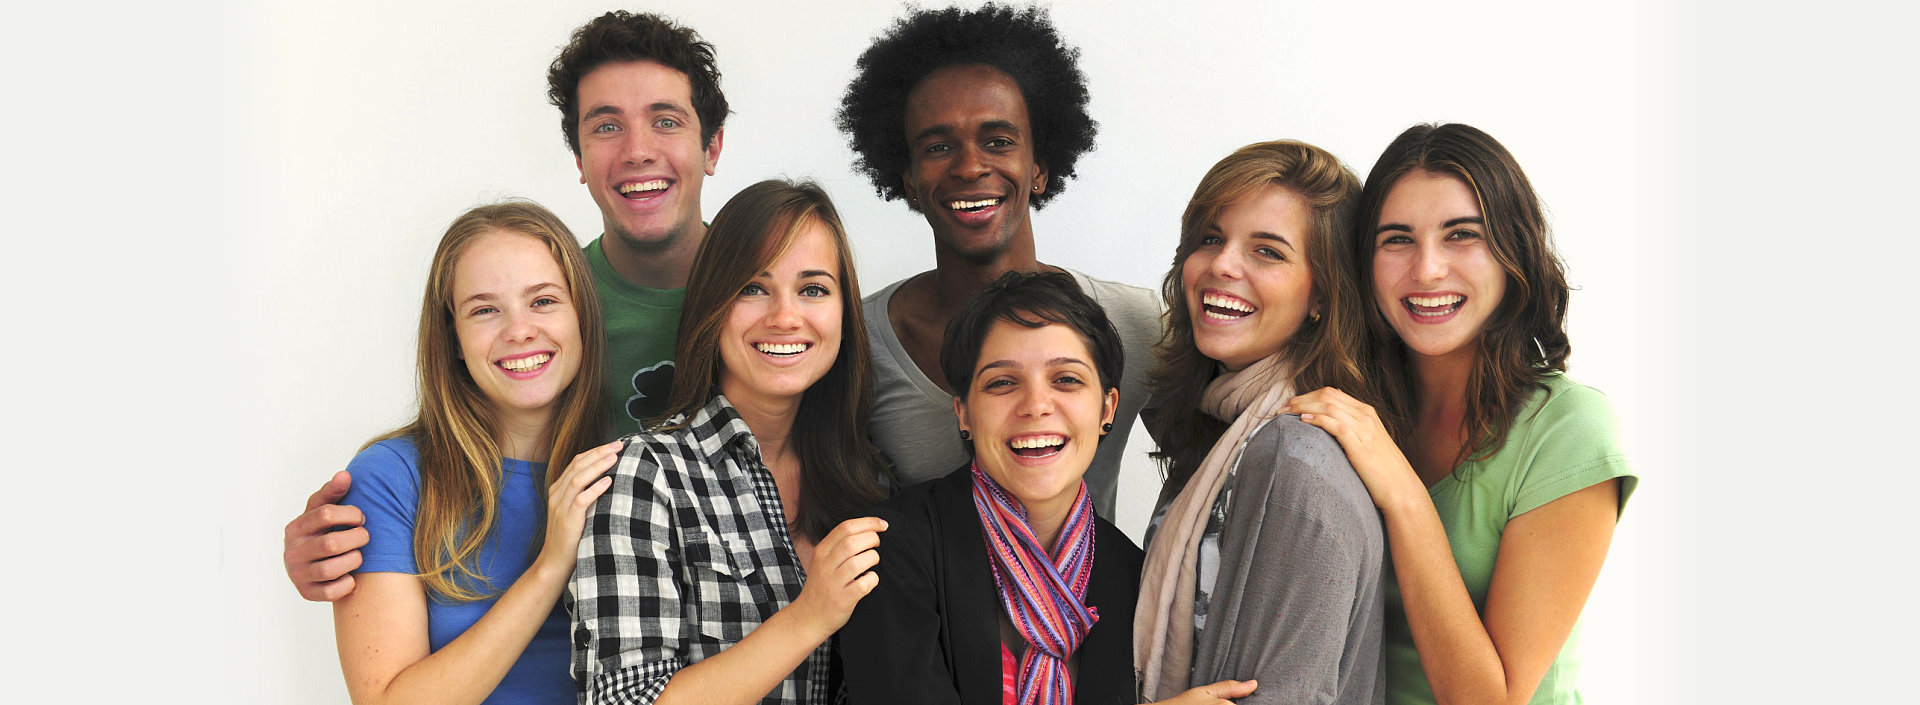 smiling group of people